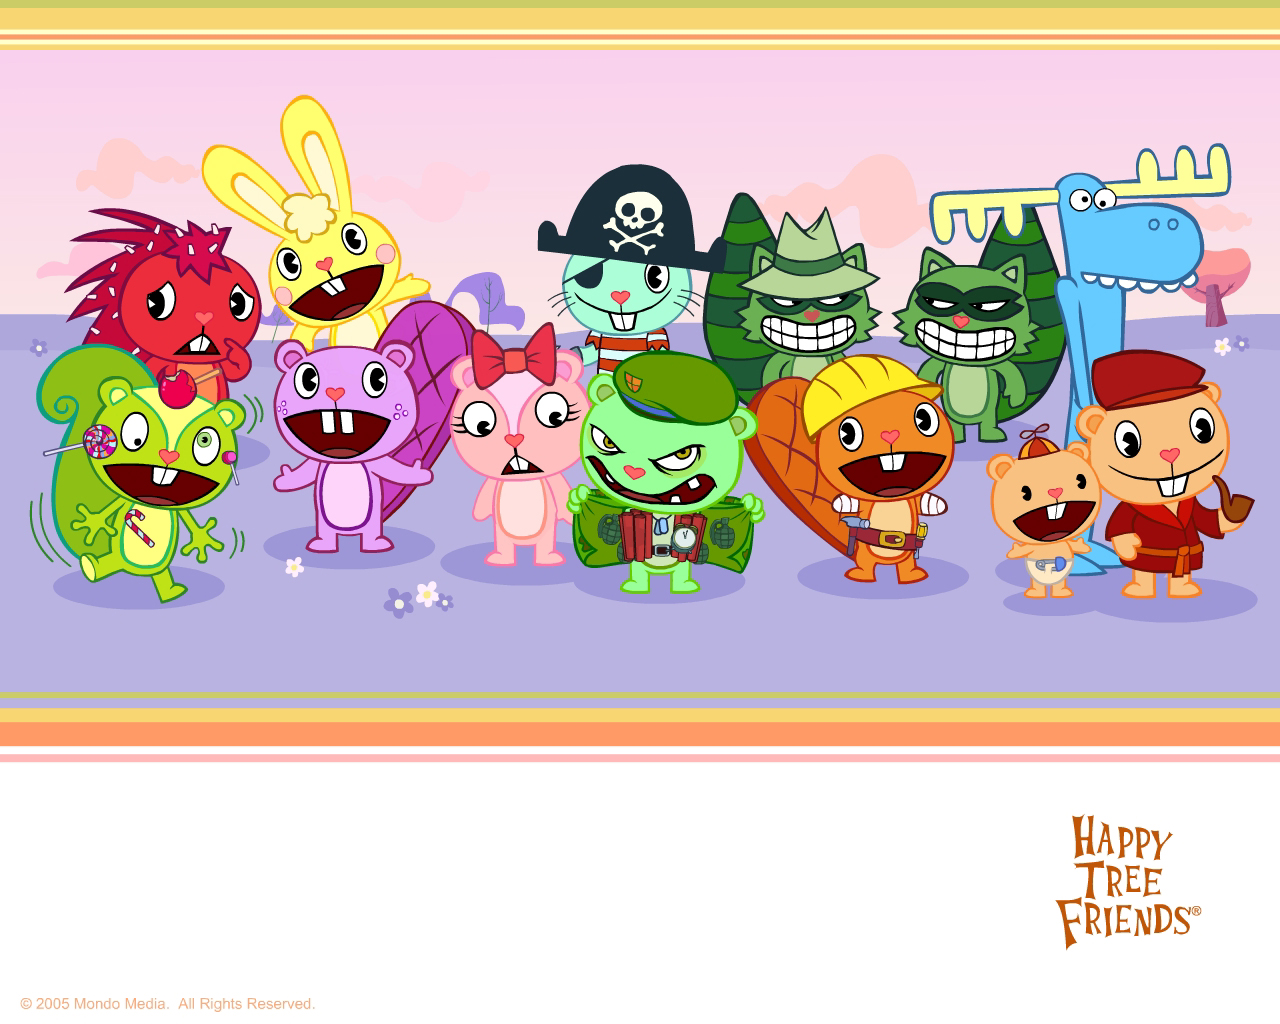 the happy tree friends